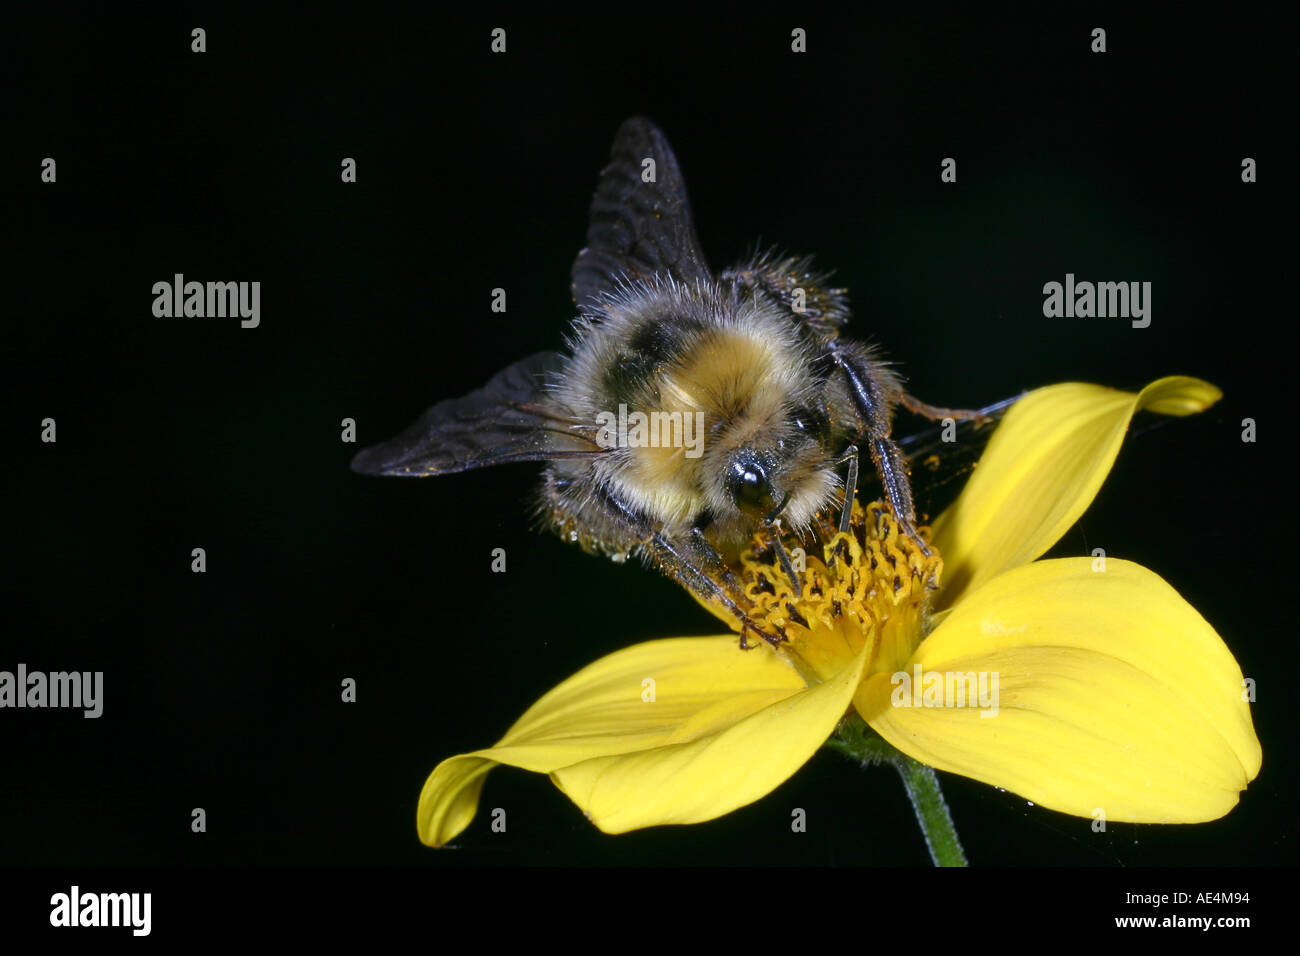 One of many types of bumble bee feeding on yellow flower in garden one of many types of bumble bee feeding on yellow flower in garden buff tailed family apidae bombus terrestris mightylinksfo